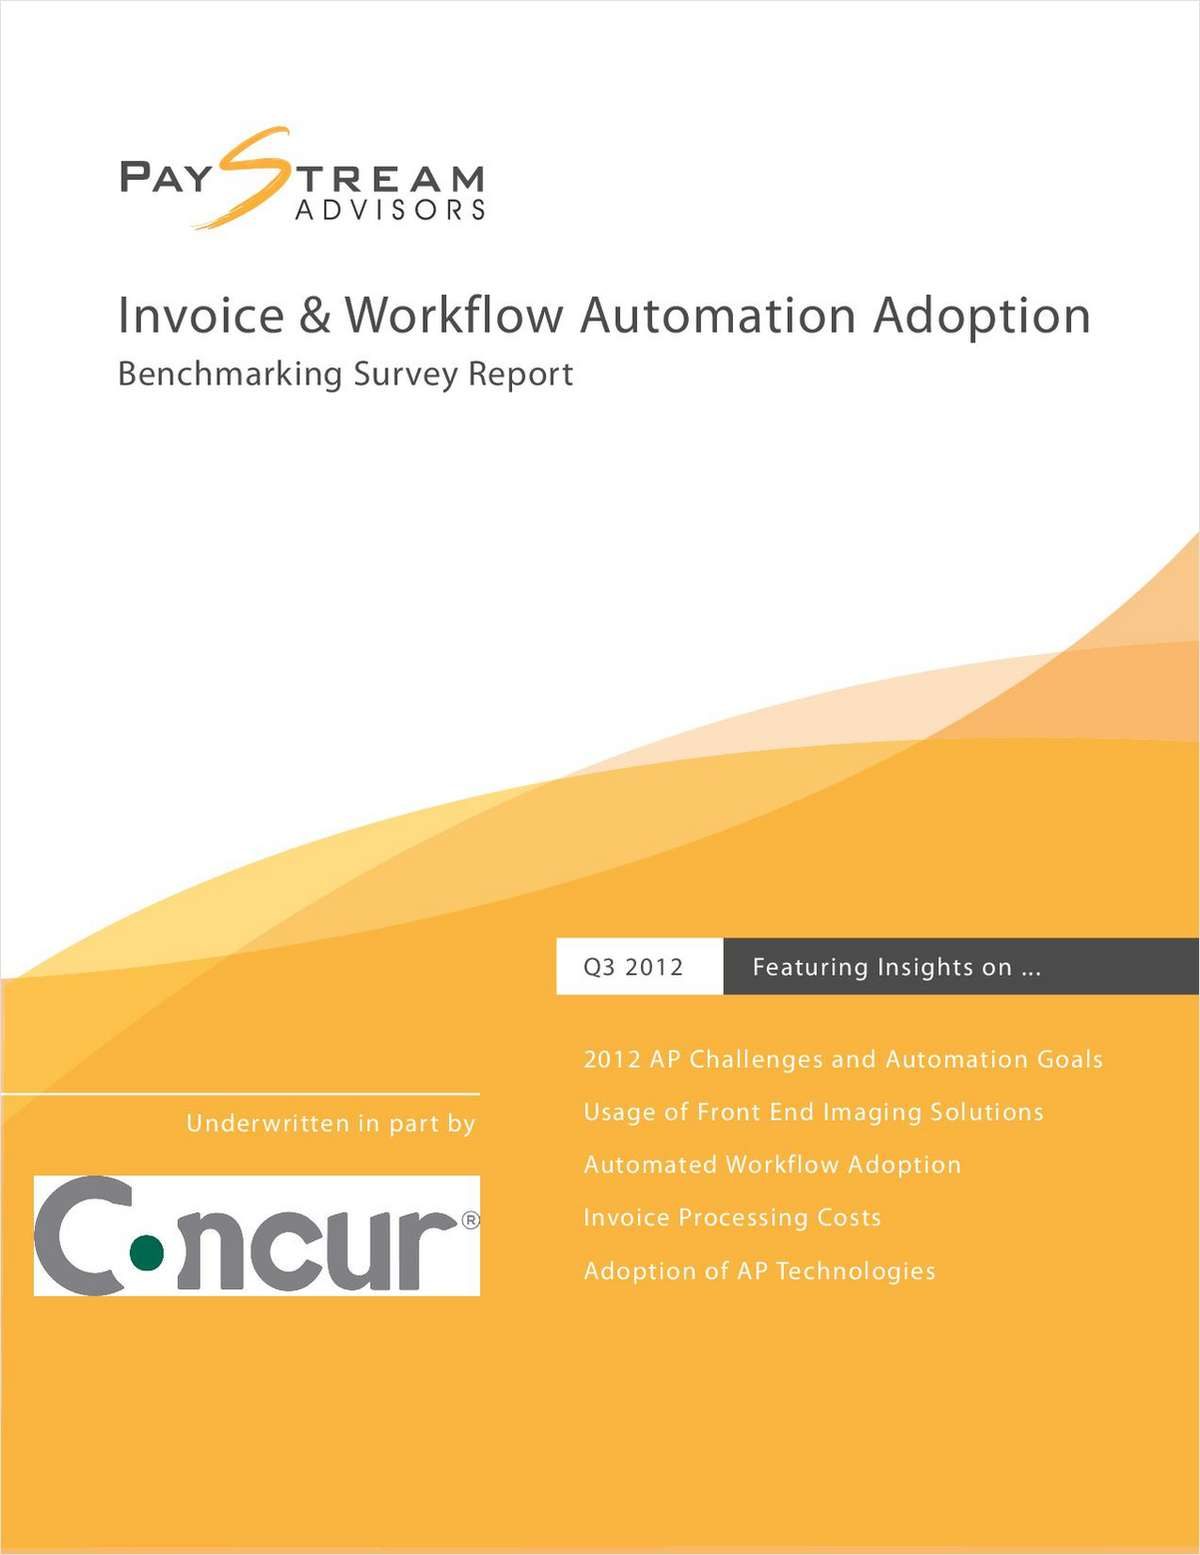 Invoice and Workflow Automation Adoption Benchmarking Survey Report